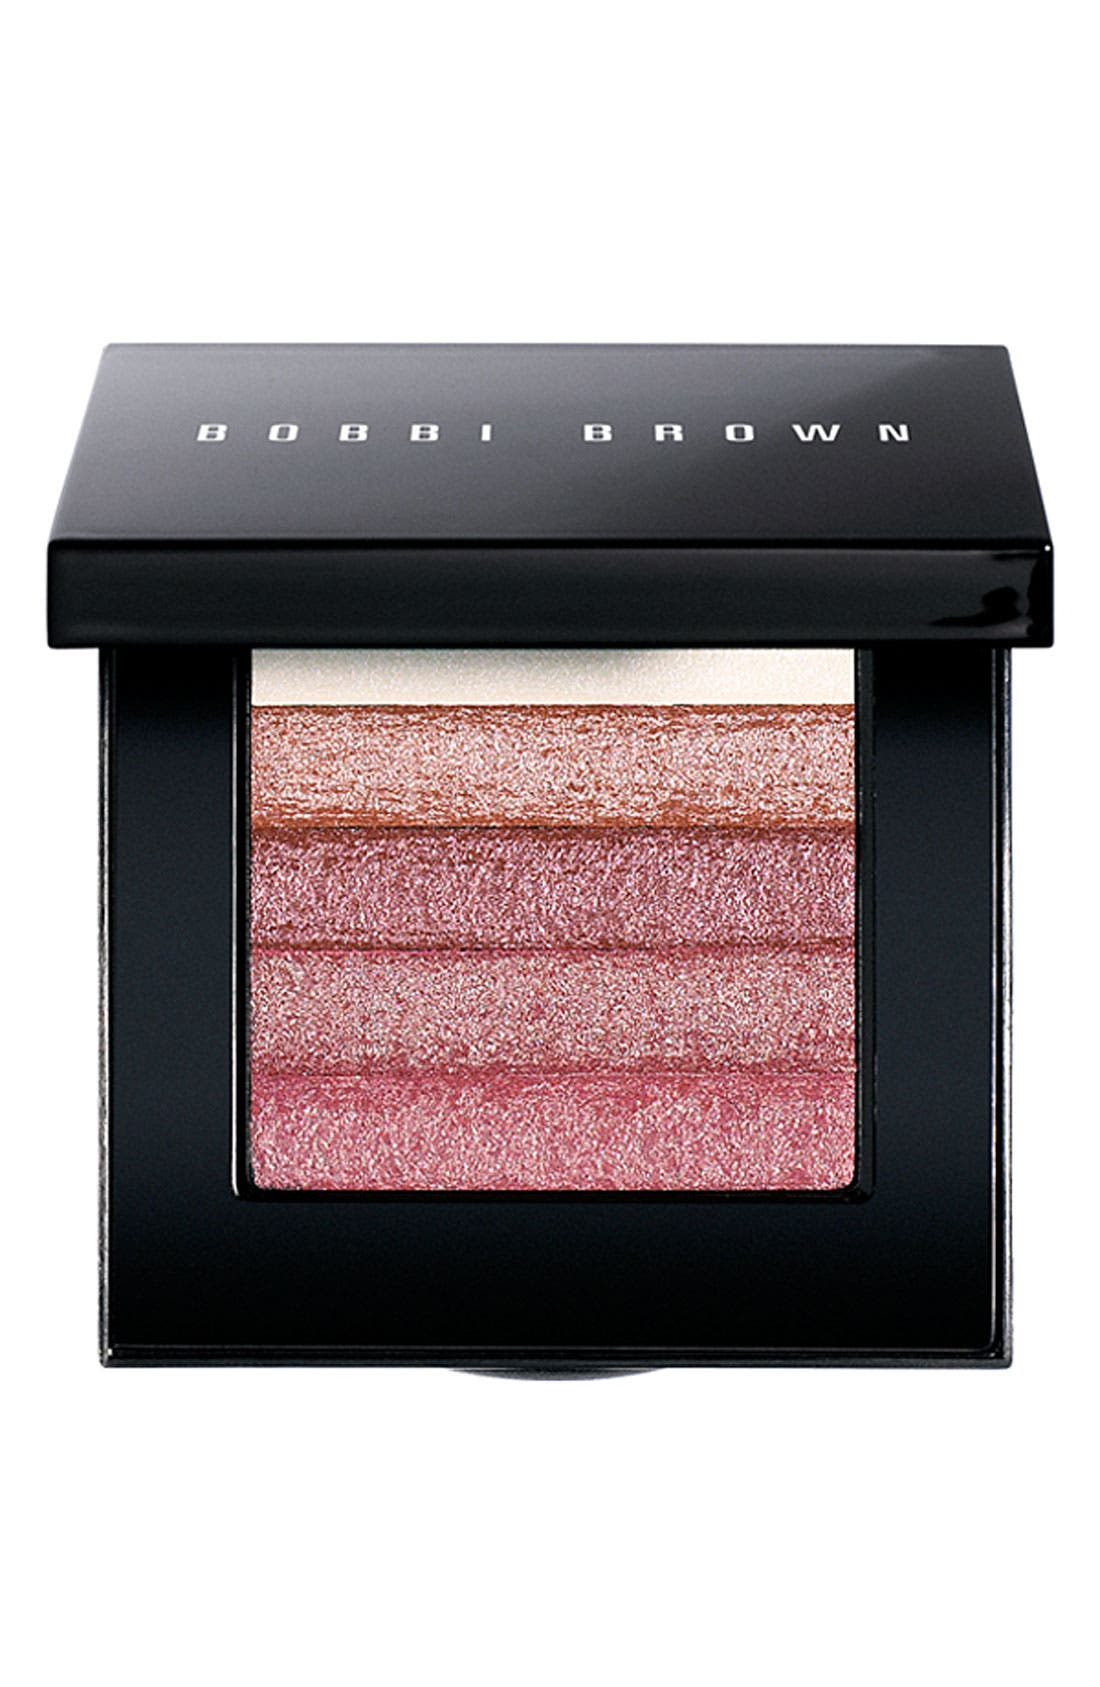 BOBBI BROWN Shimmer Brick Highlighter Compact, Main, color, ROSE